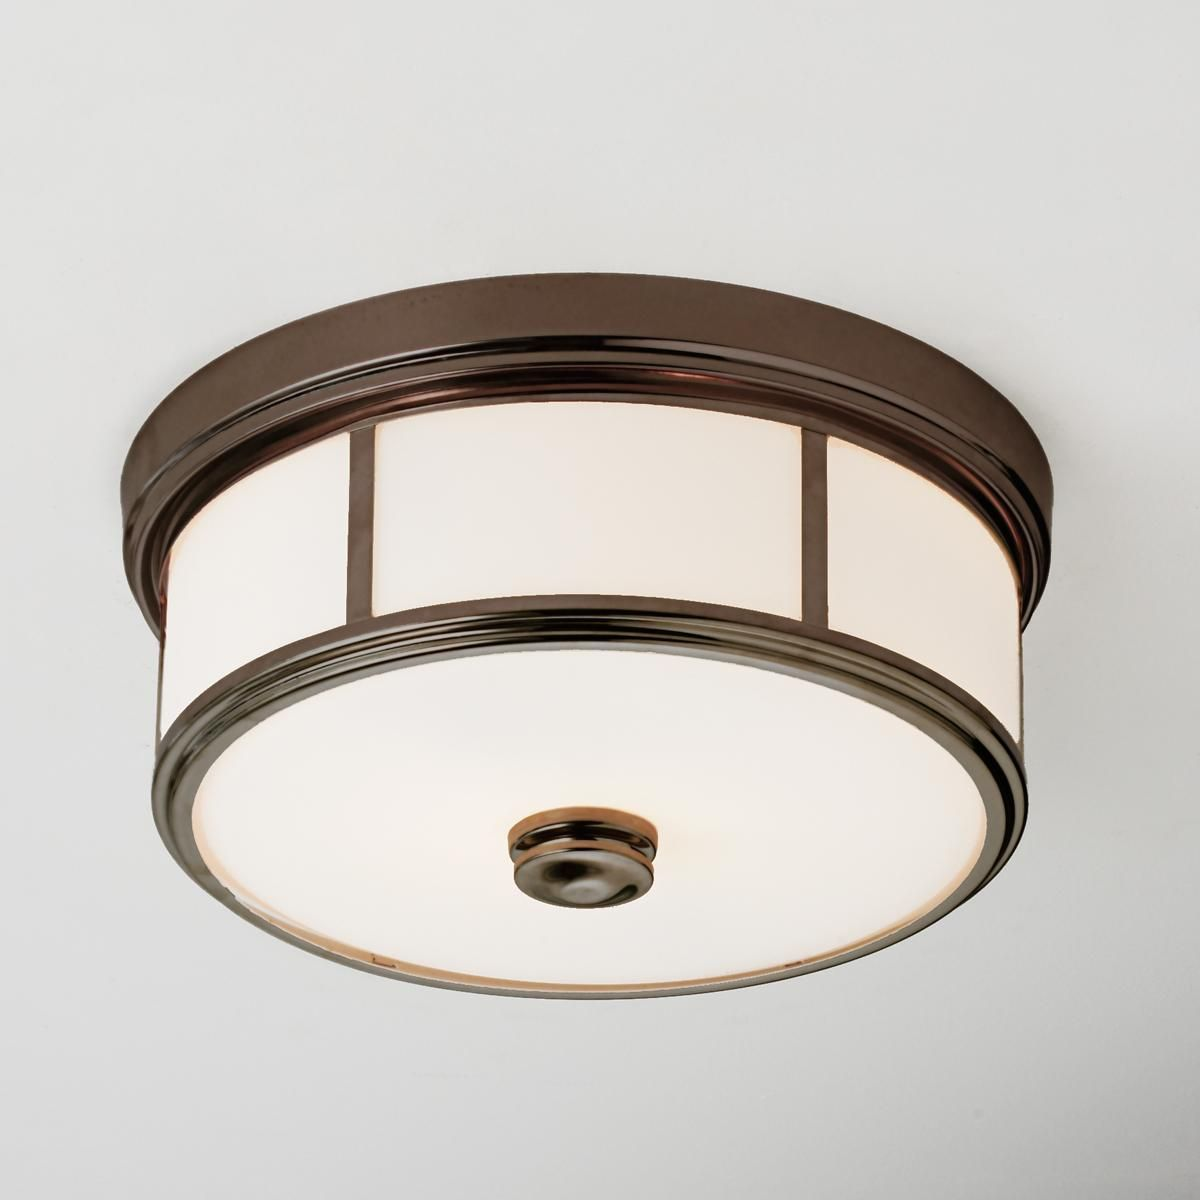 Traditional Urban Cage Ceiling Light Cage Ceiling Light Ceiling Lights Ceiling Light Shades